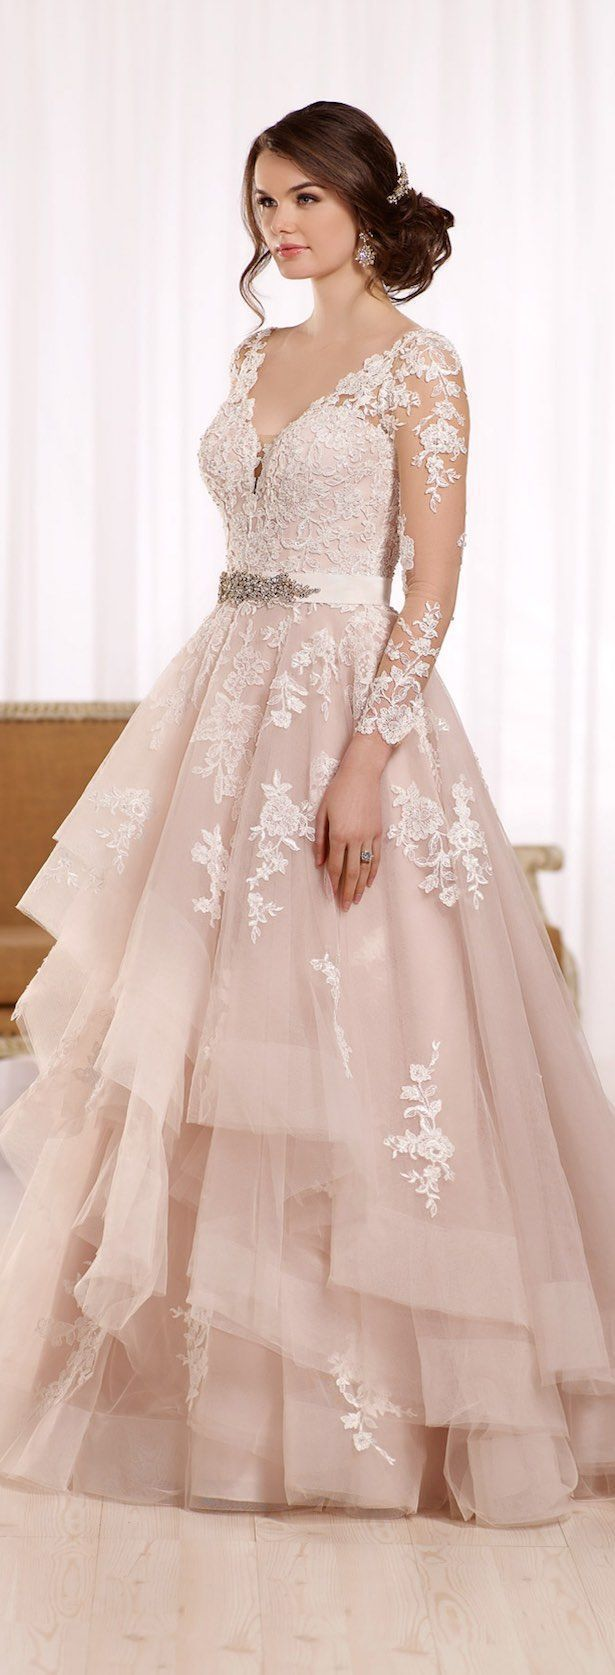 7777 best vestidos images on Pinterest | Wedding frocks, Wedding ...